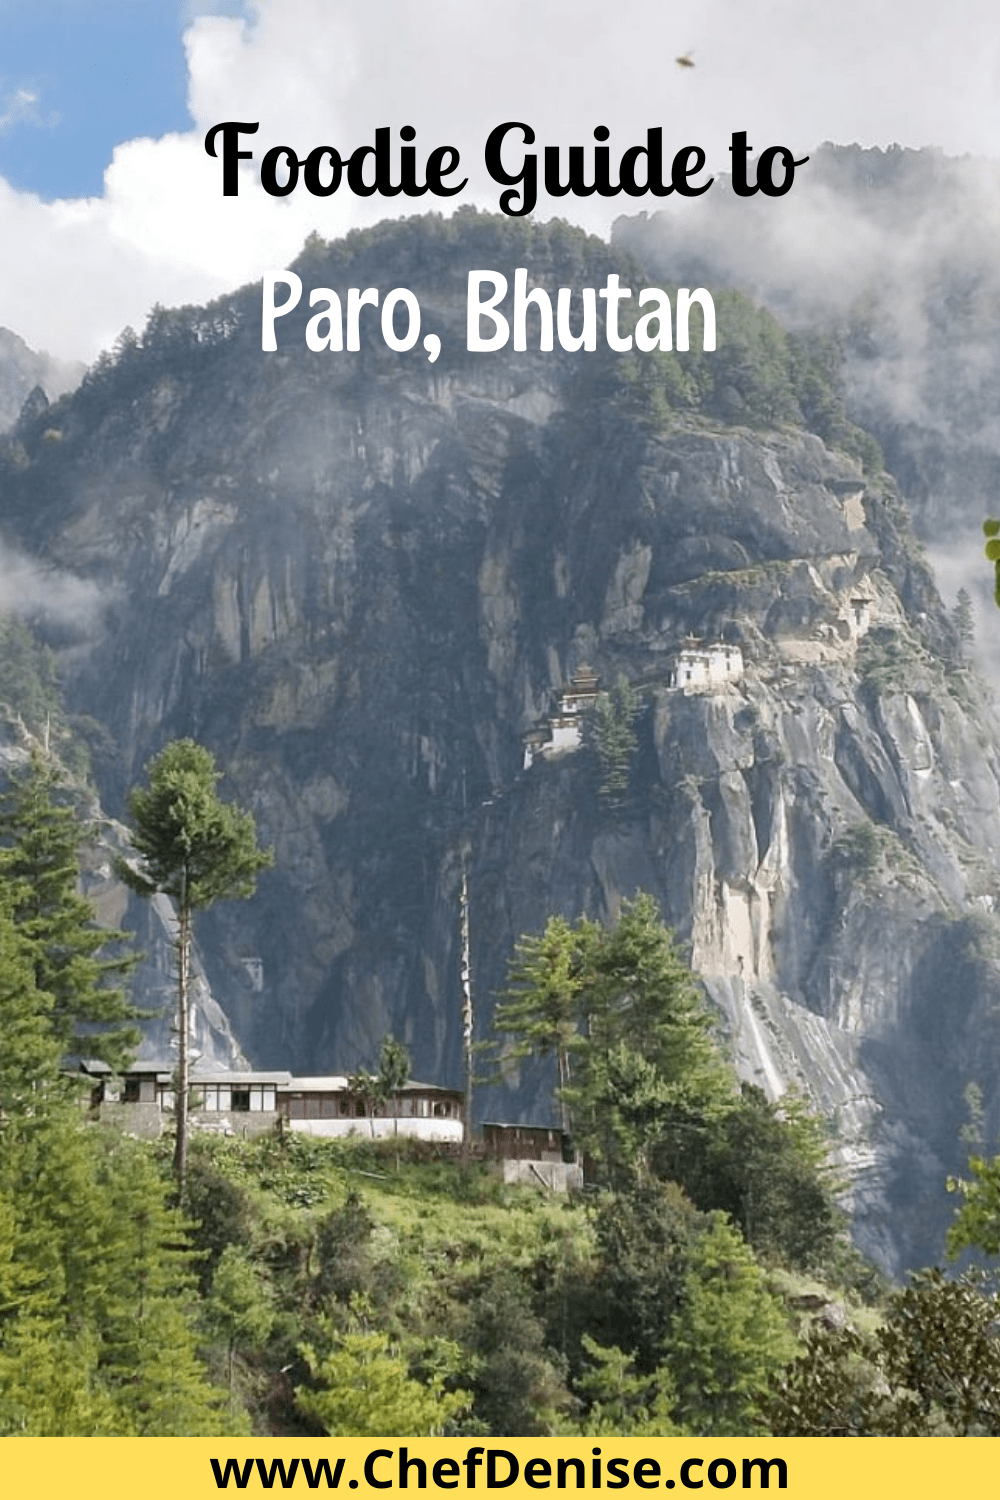 Pin for foodie guide to Paro, Bhutan